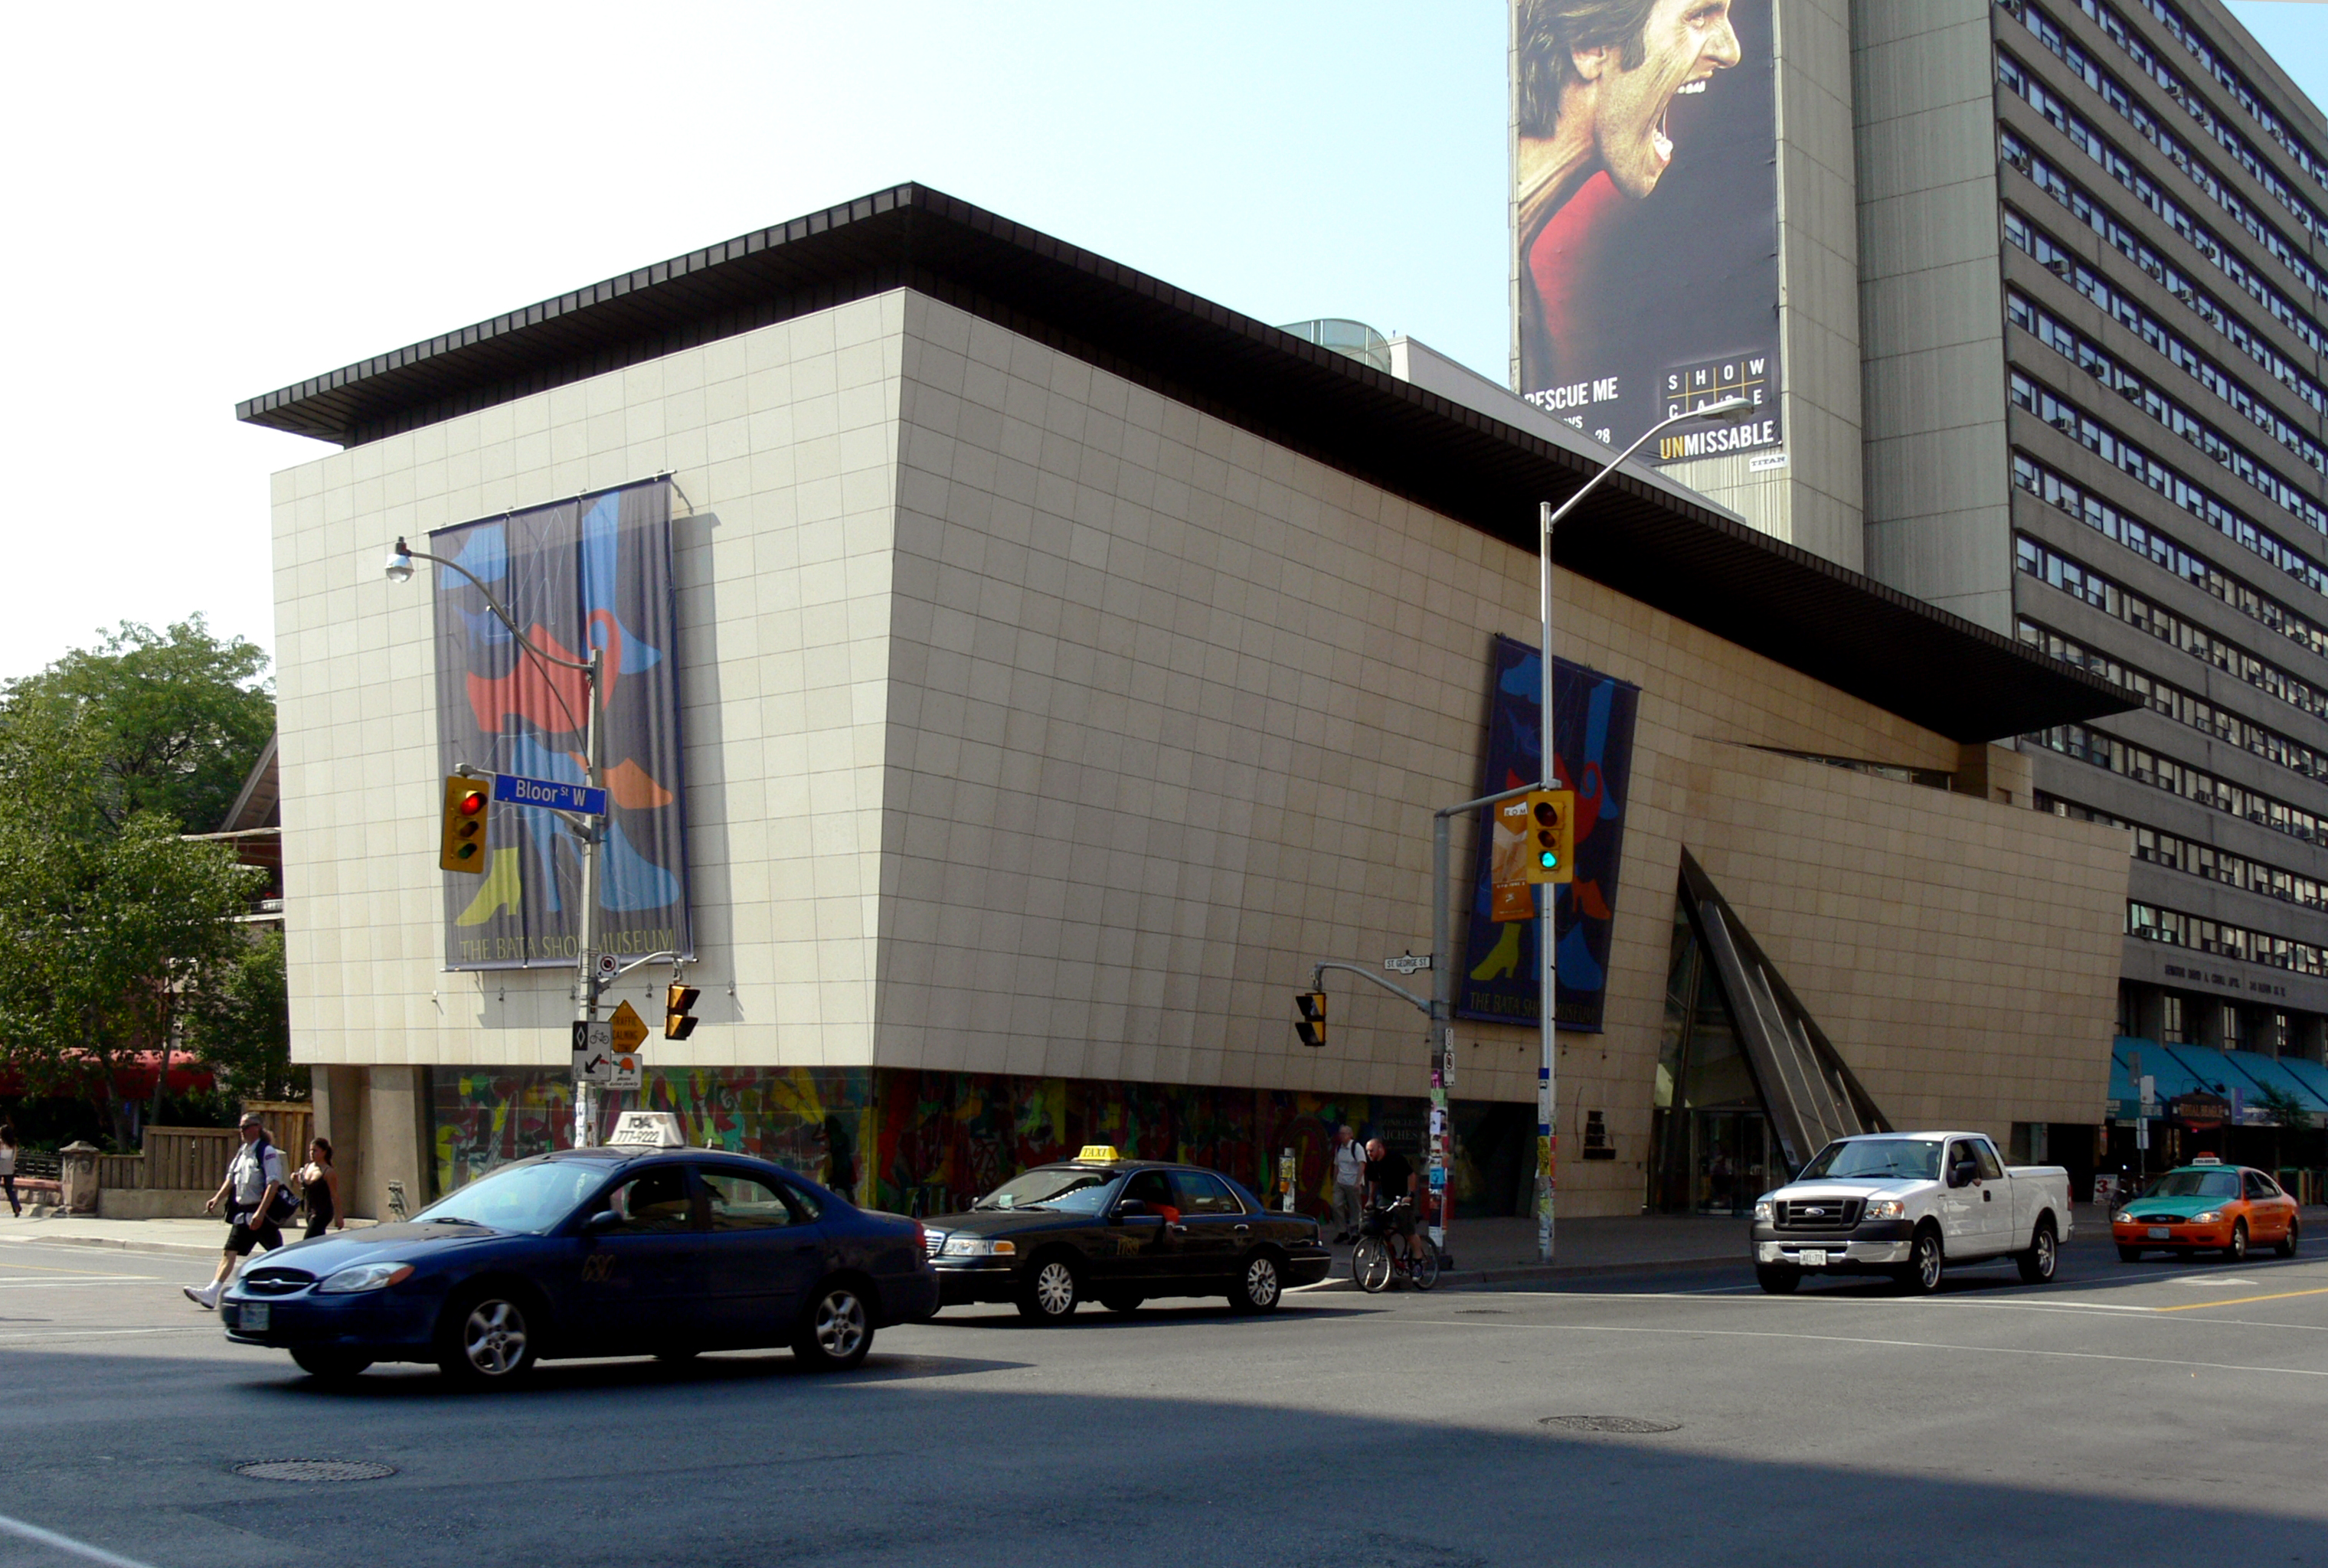 bata shoe museum events june 2013